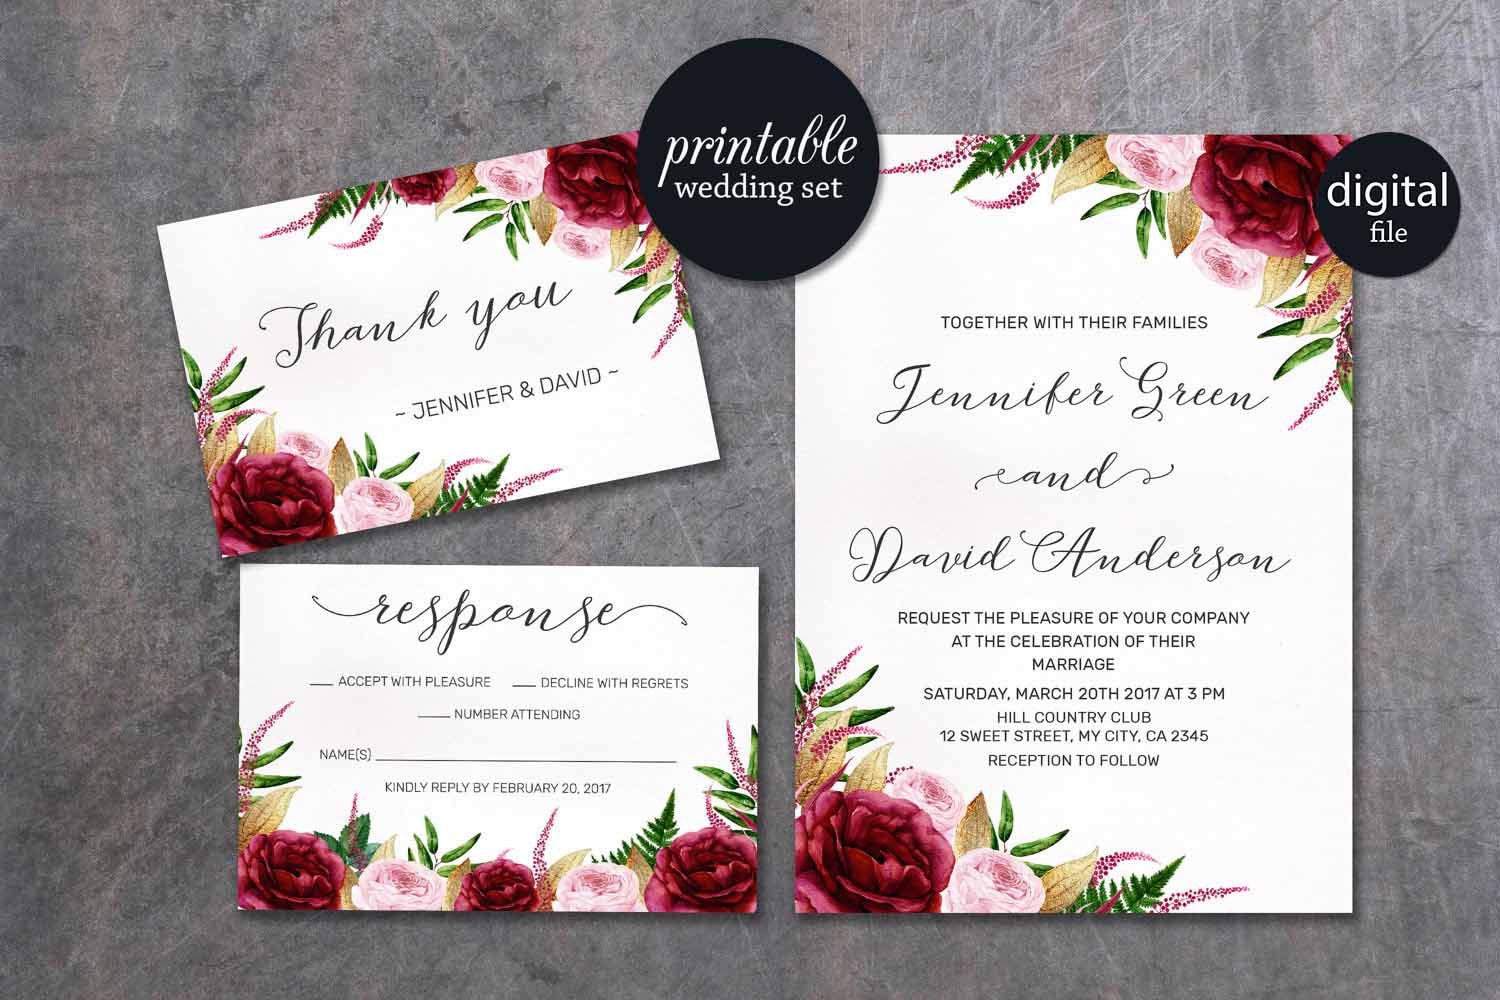 Burgundy Wedding Invitation Floral Wedding Invitation Pink | Etsy